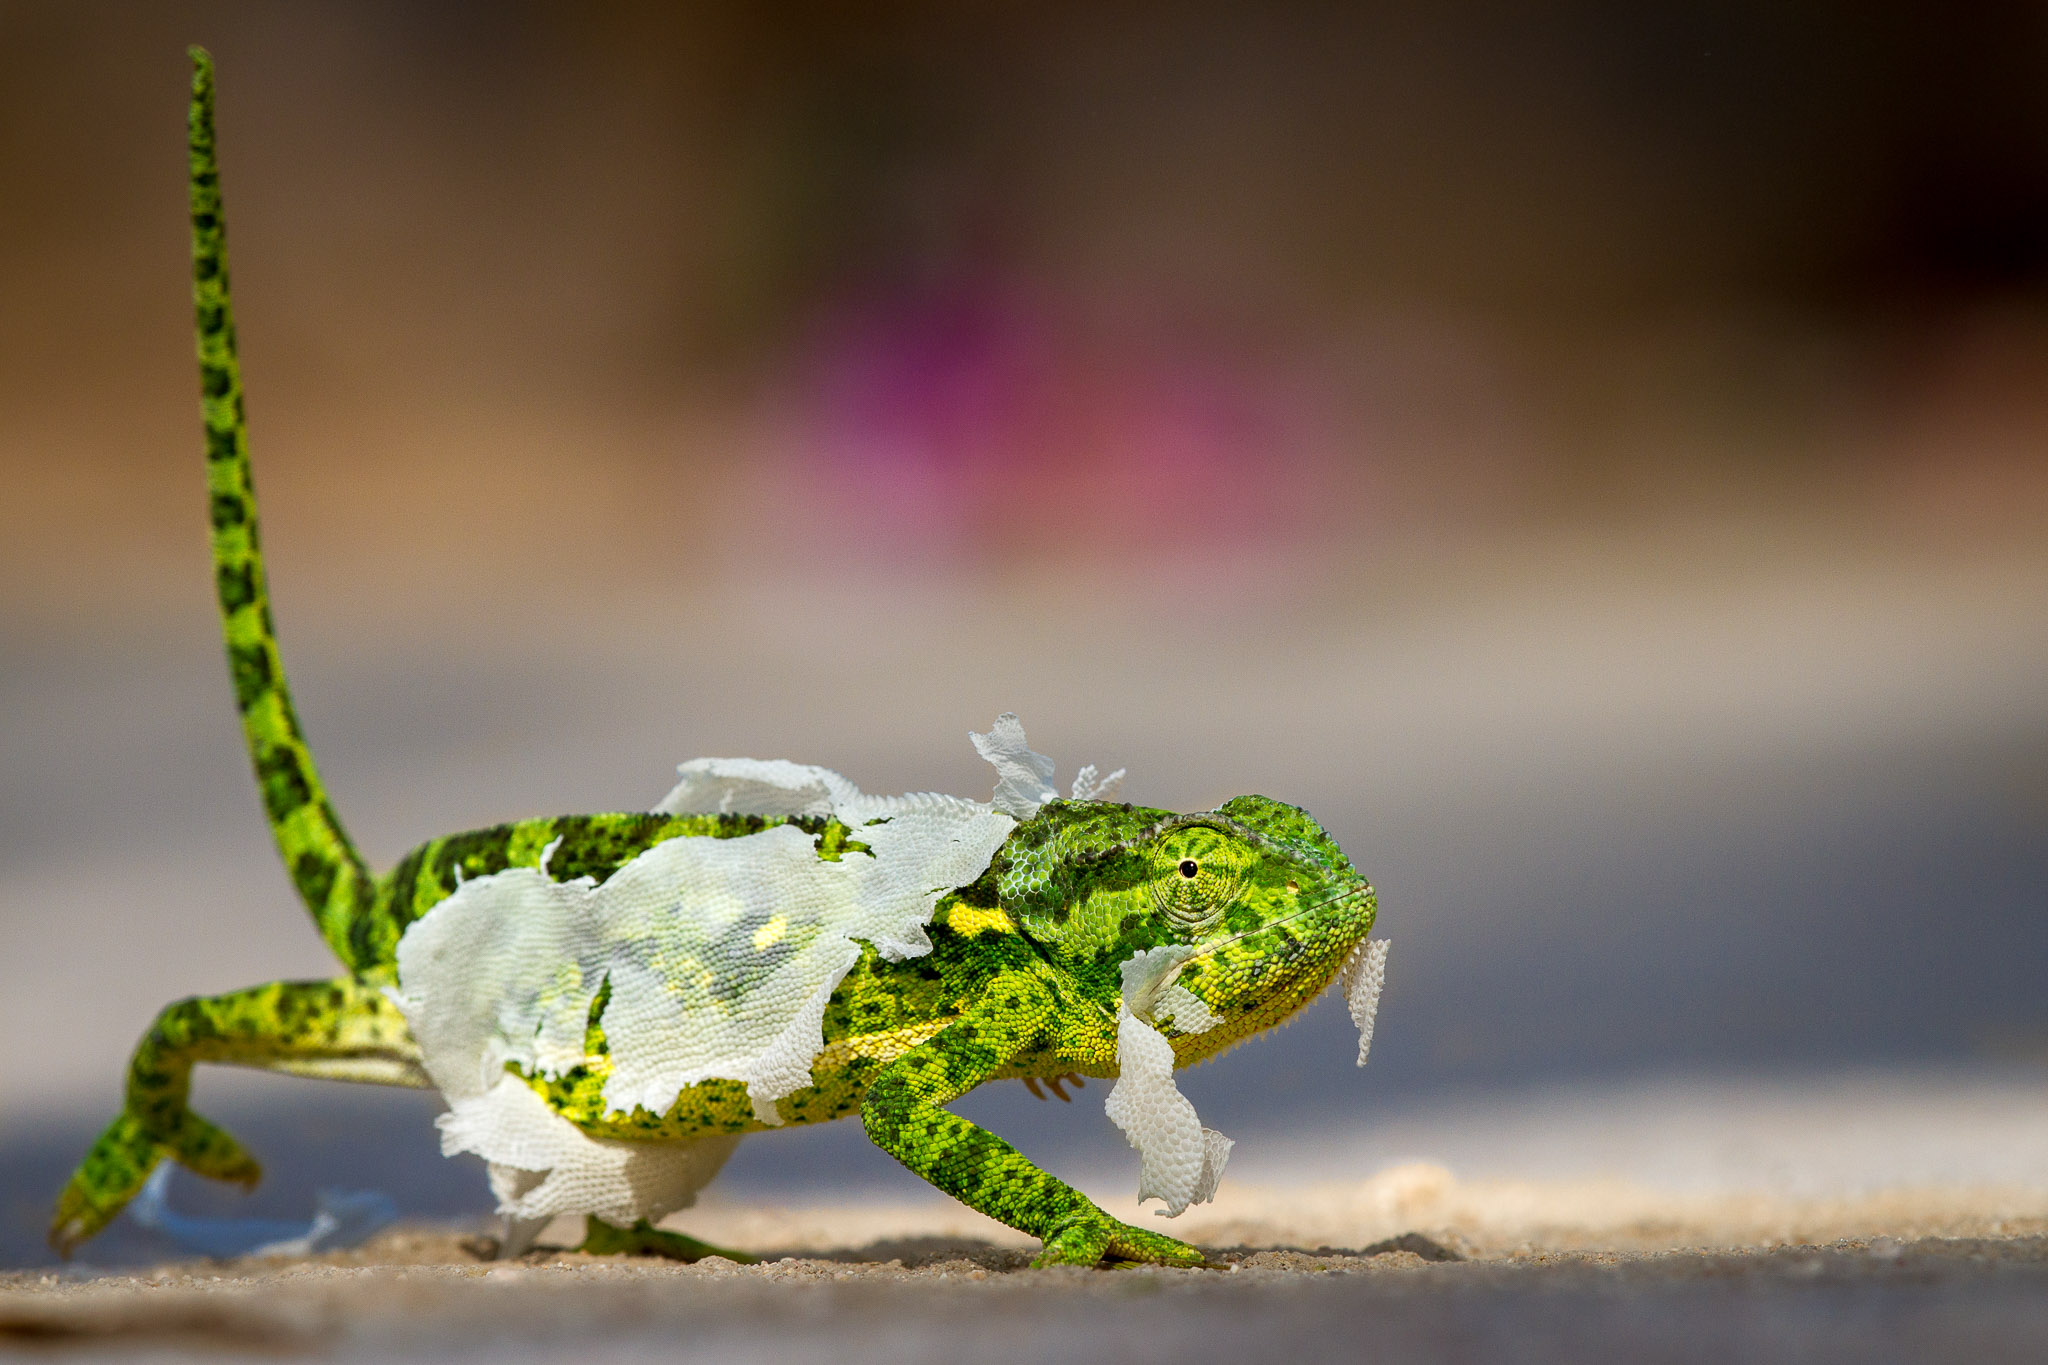 A chameleon shedding its skin